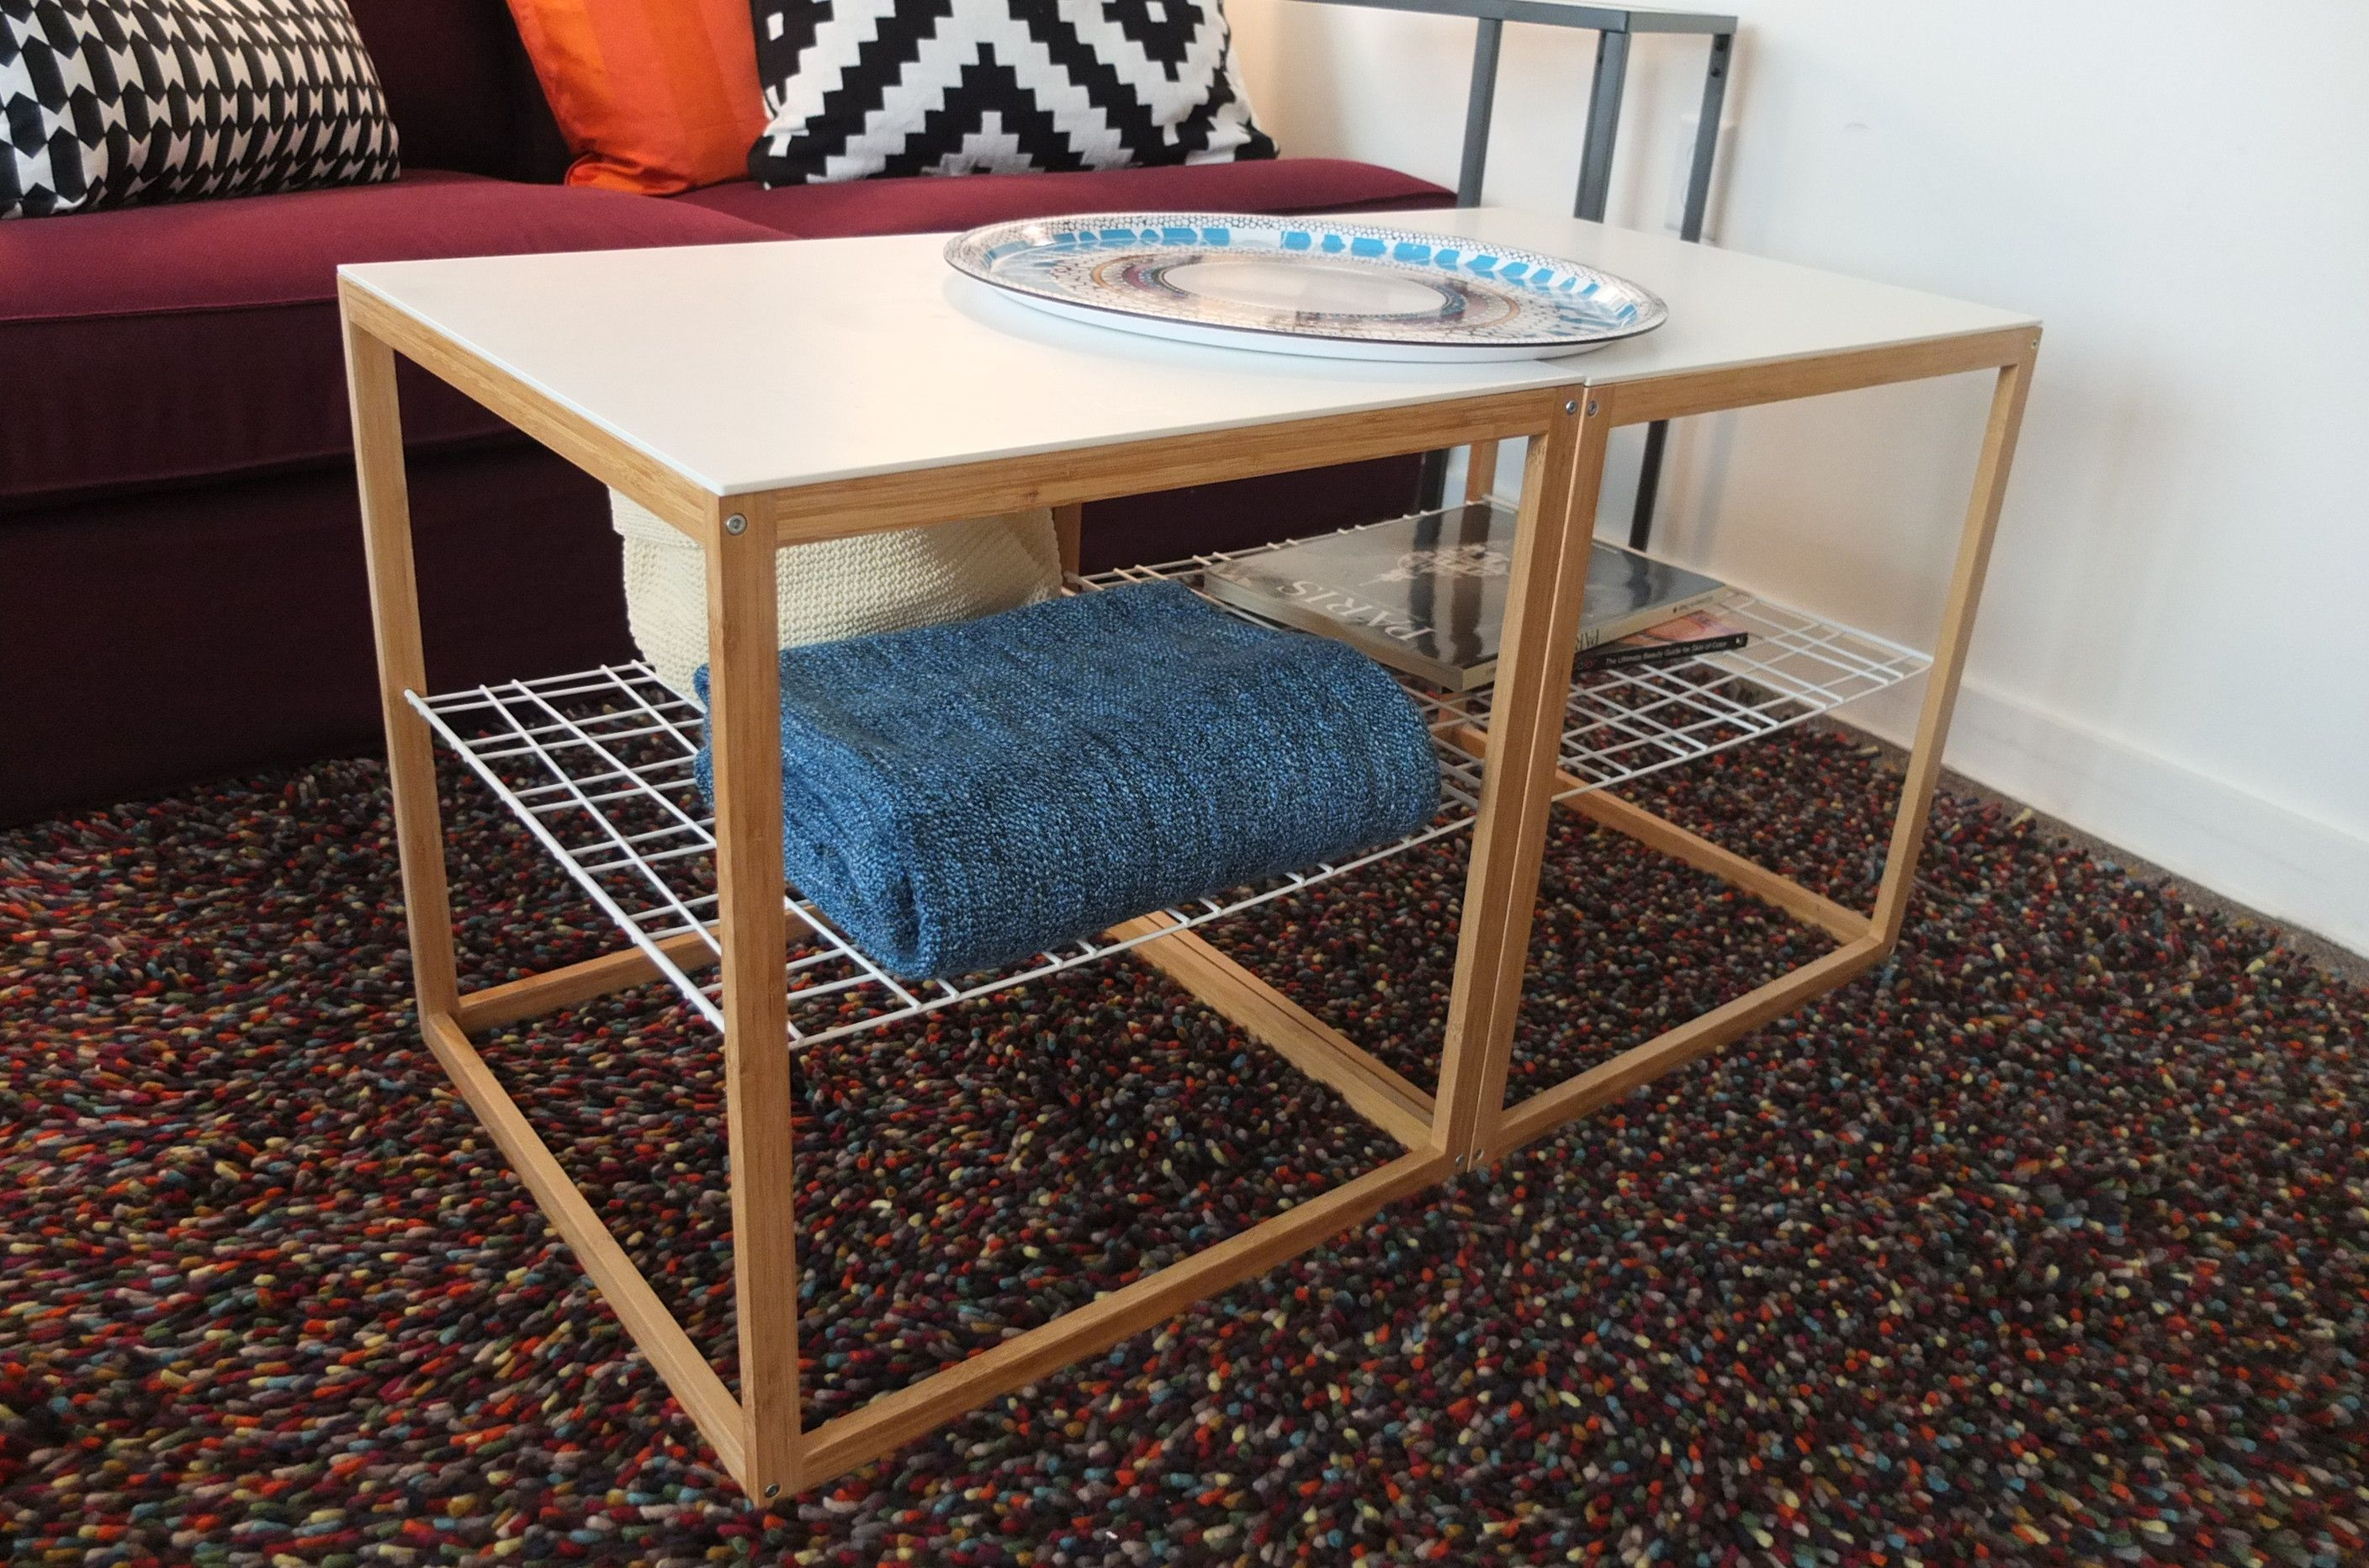 Using two IKEA PS side tables side by side as a coffee table still